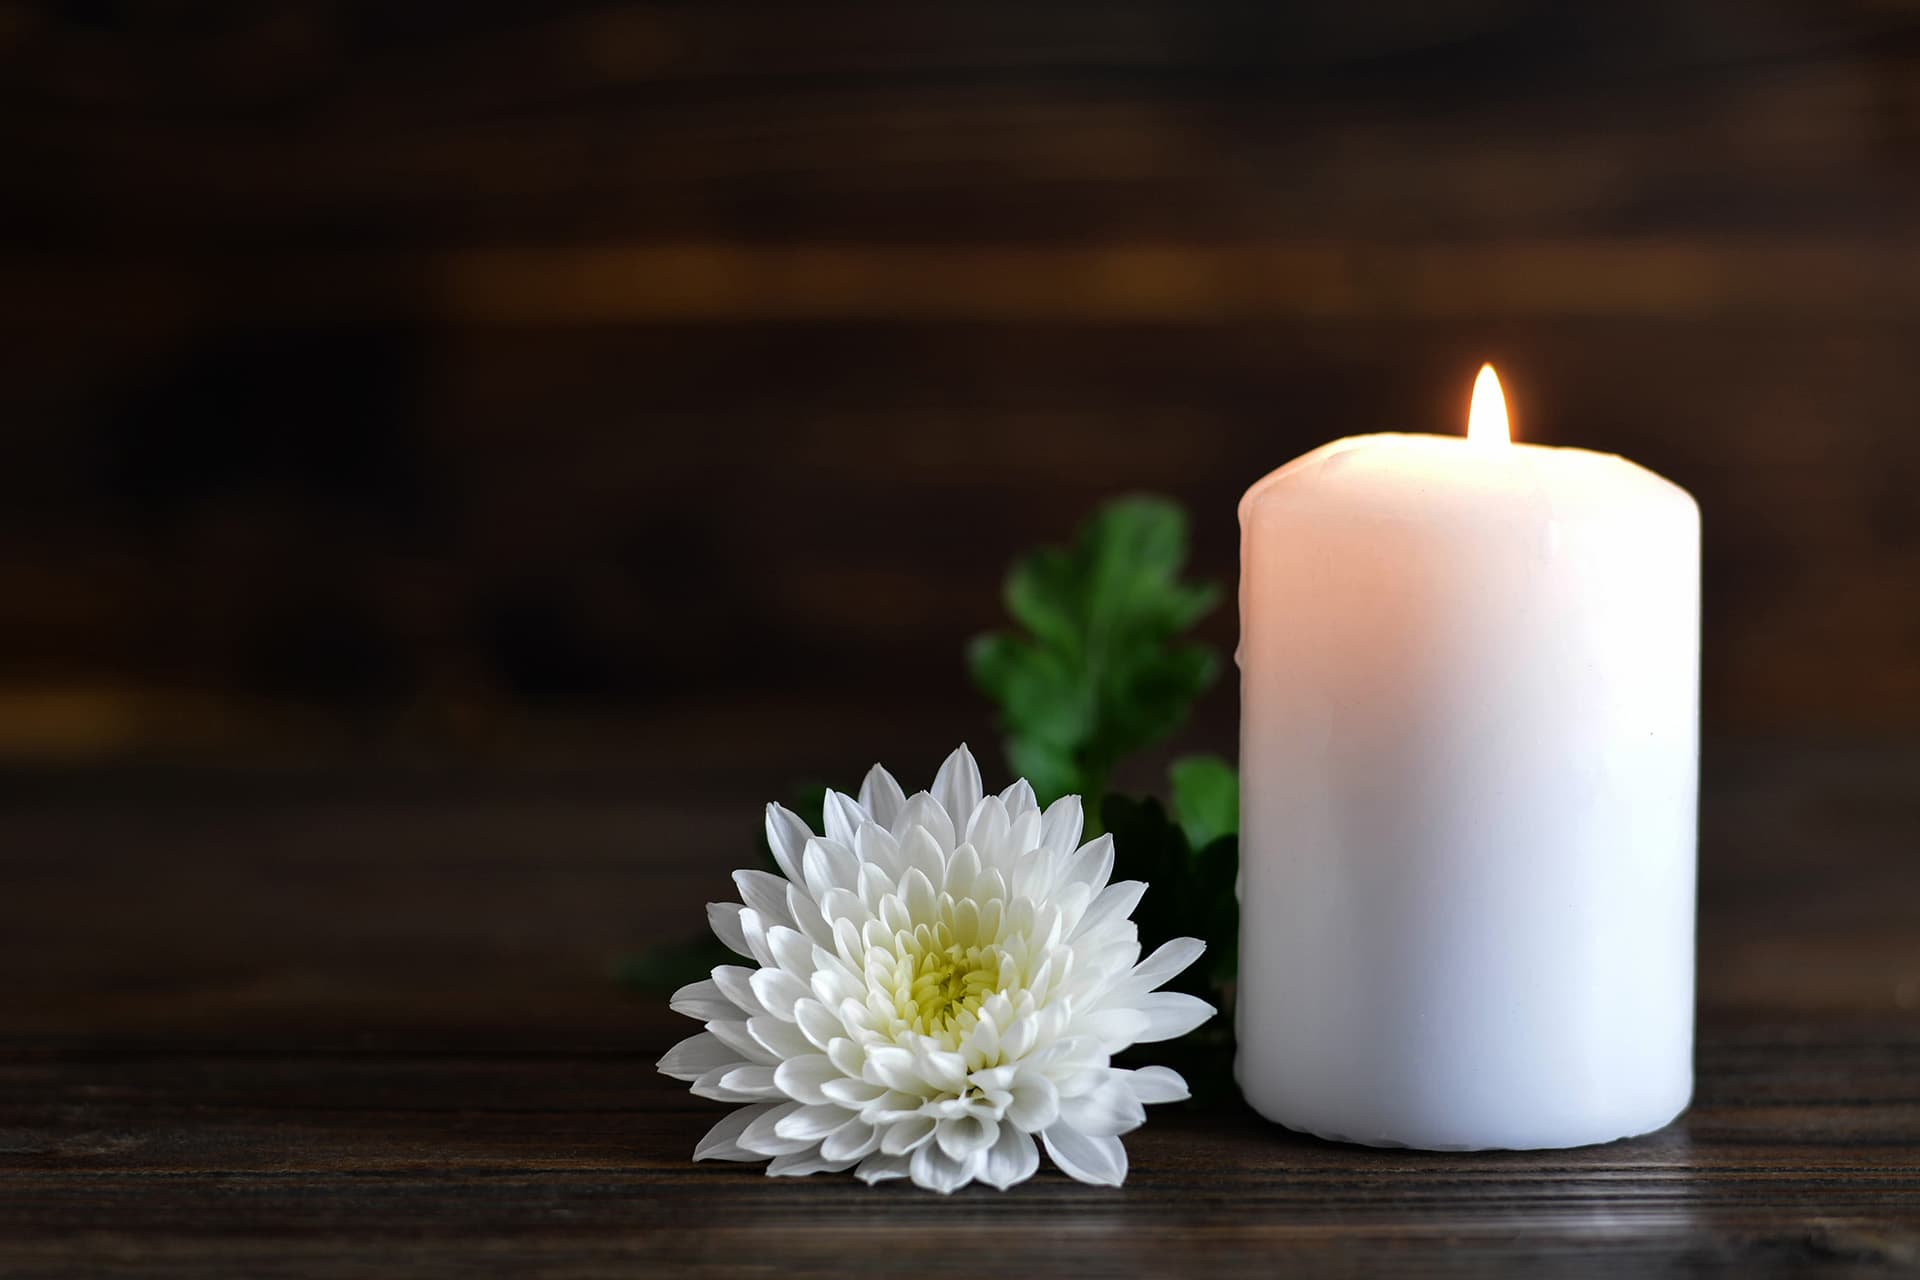 Funeral home insurance with a white flower and white candle